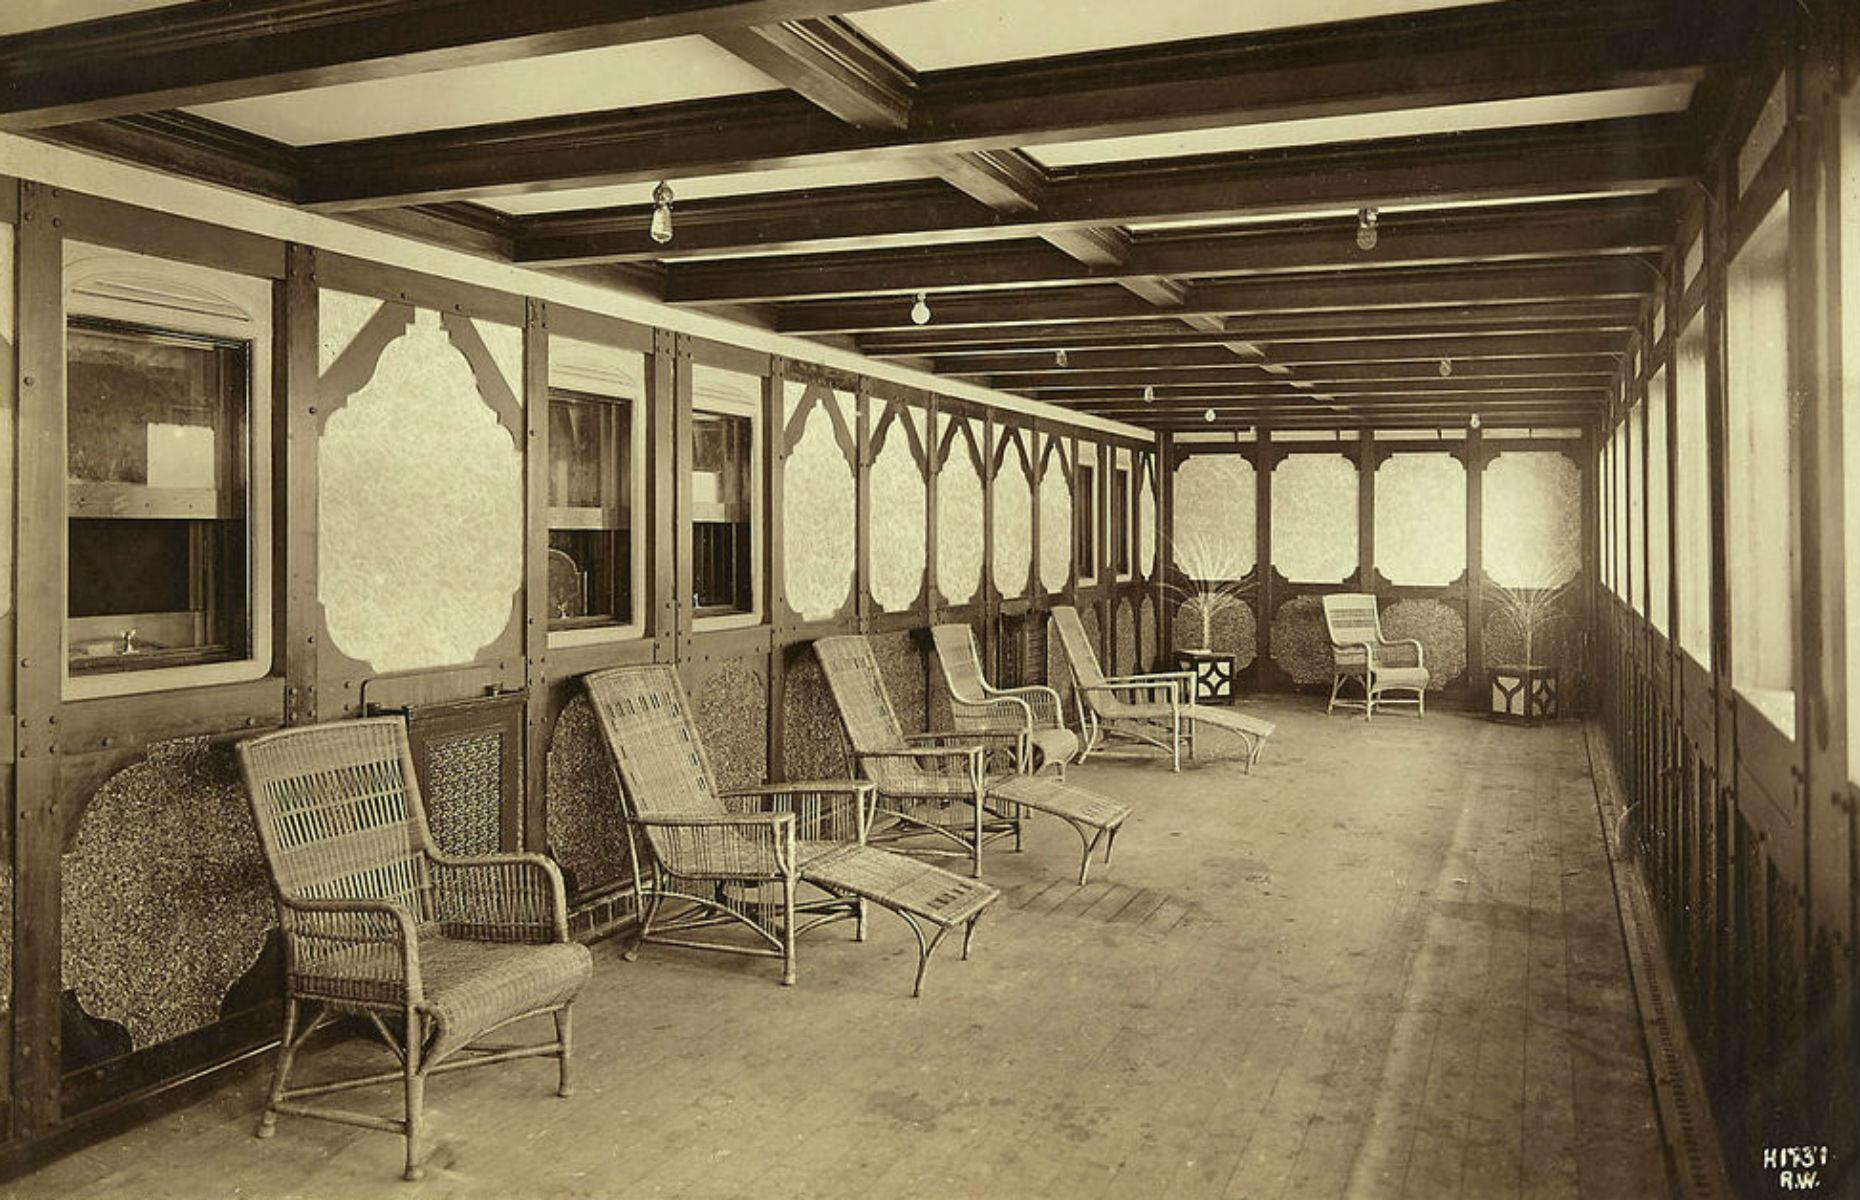 Slide 19 of 46: Those staying in one of the four parlor suites had access to one of two private interior promenades. These measured 50 feet (15m) in length and were styled in a wooden Tudor design. They were on either side of the Titanic, offering exclusive views.